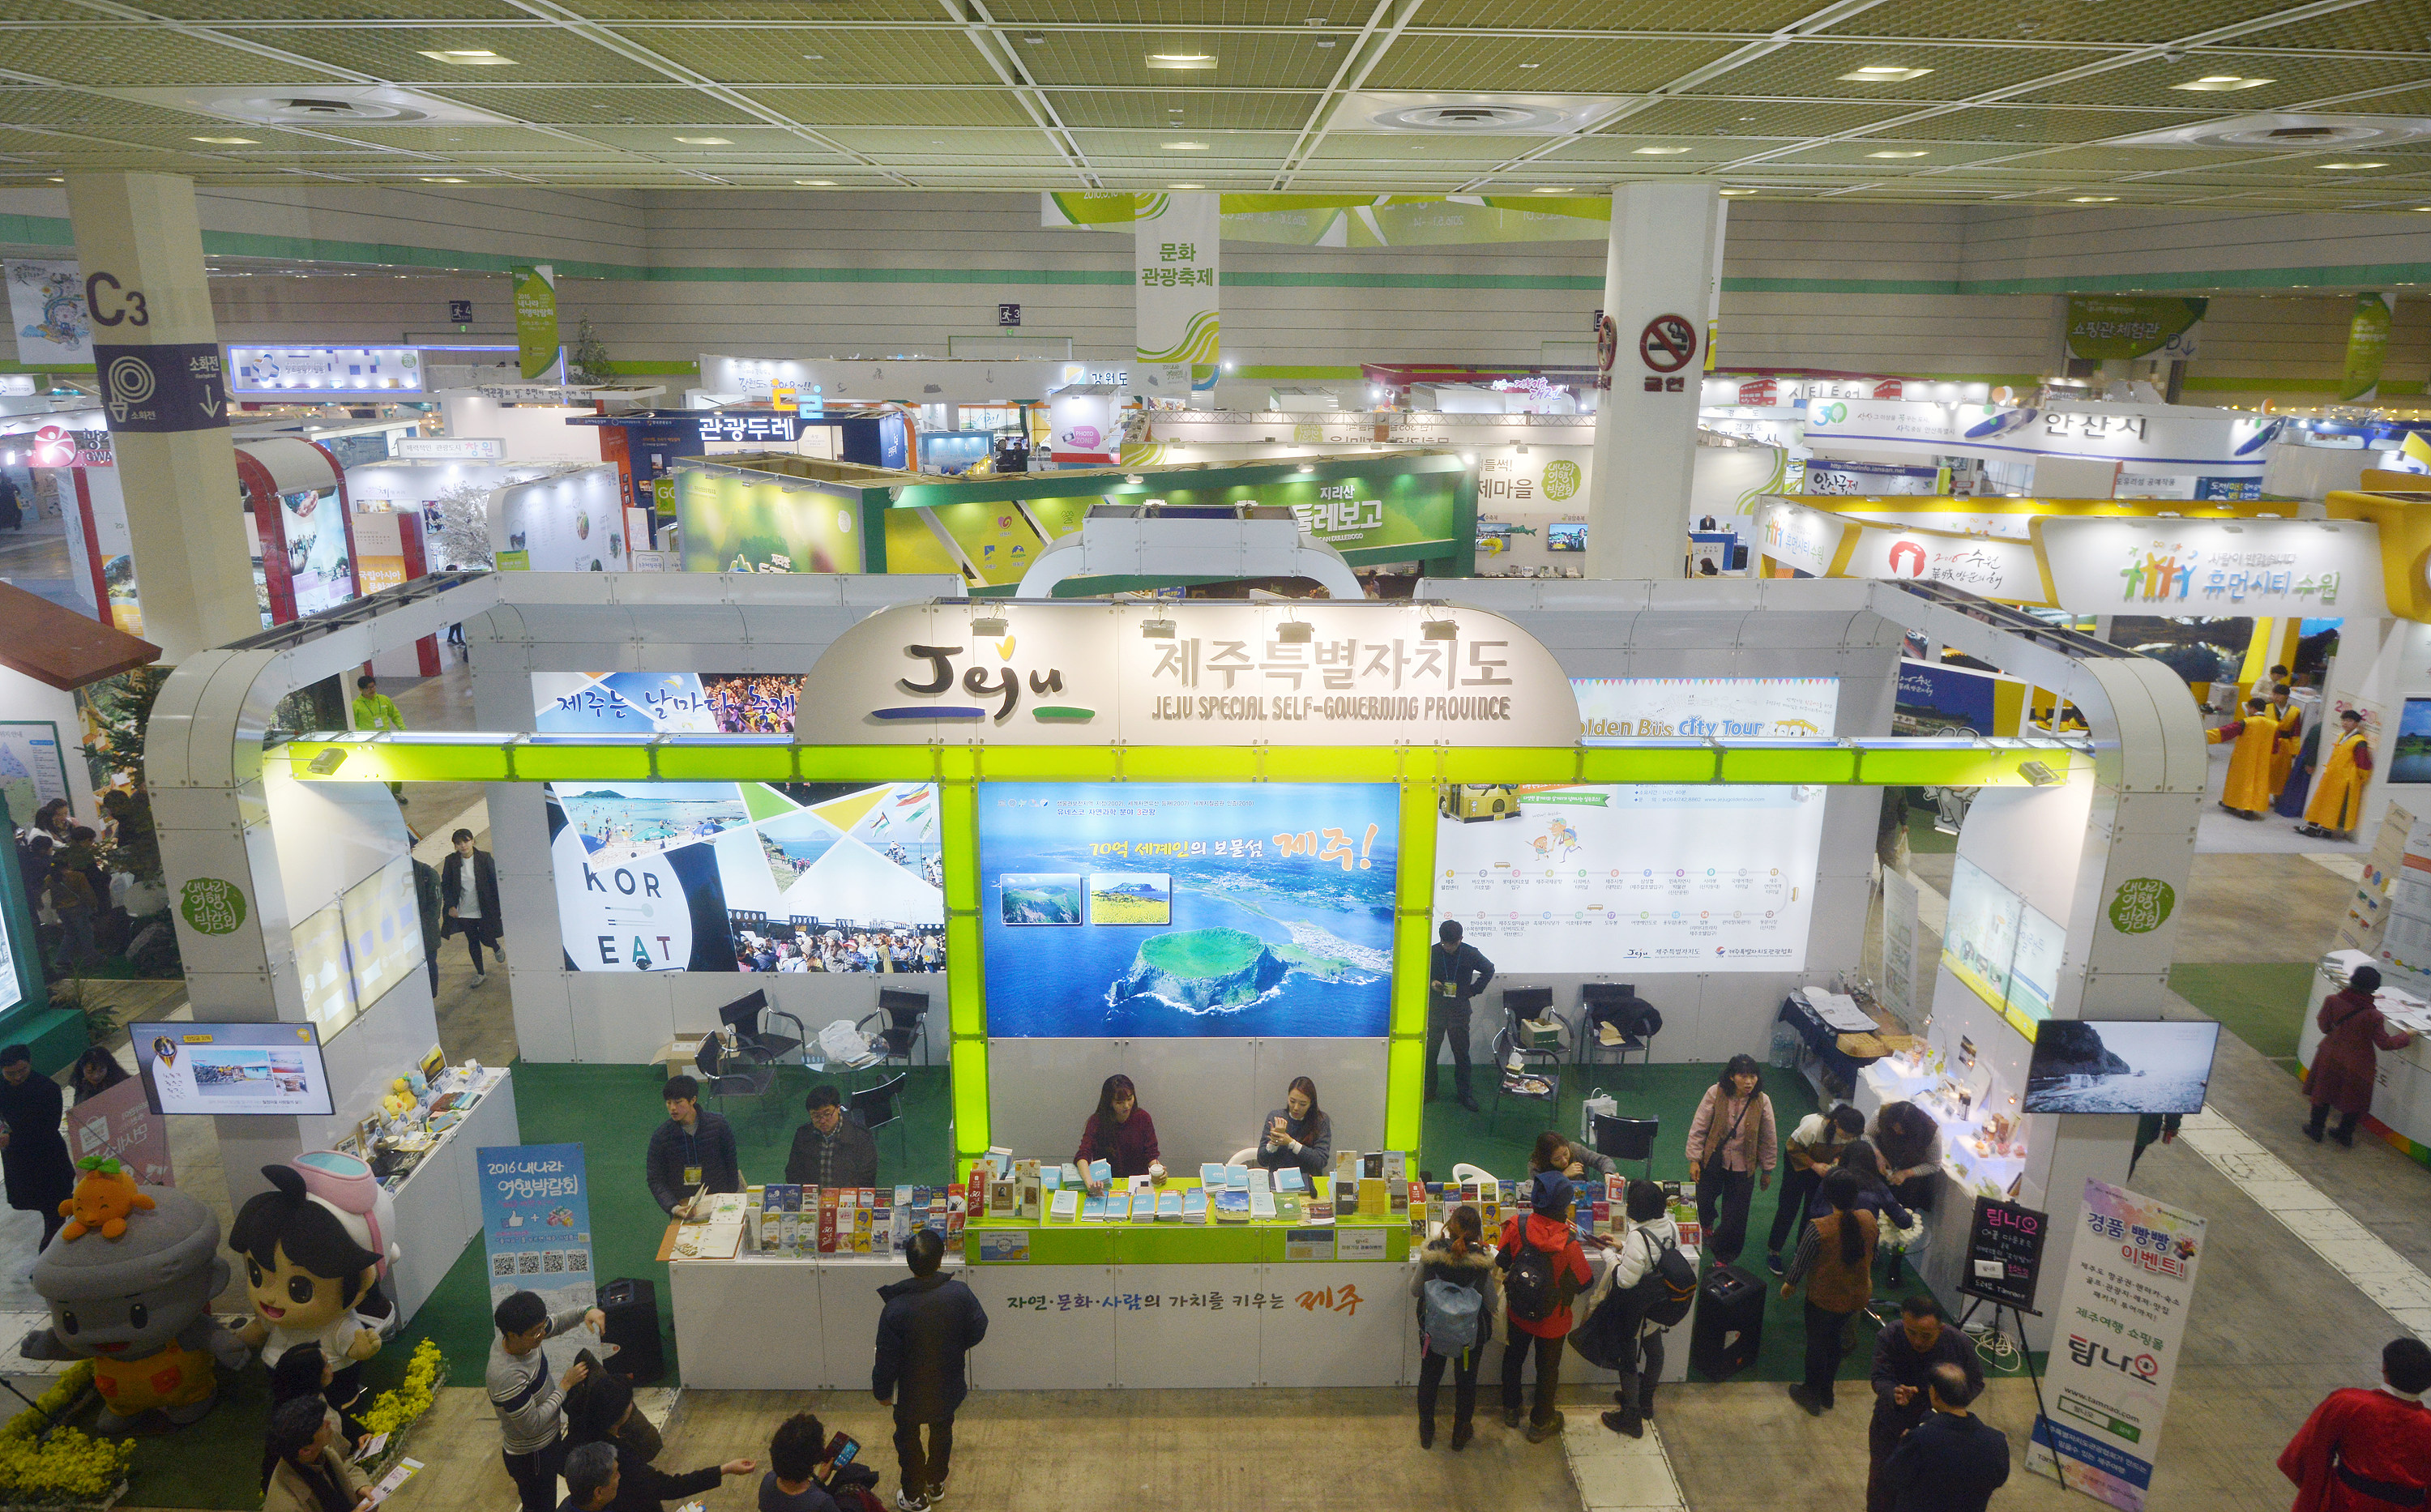 Grab your South Korea bucket list and head on over to the Korea Travel Expo 2017, to create the perfect itinerary for your South Korea adventures!